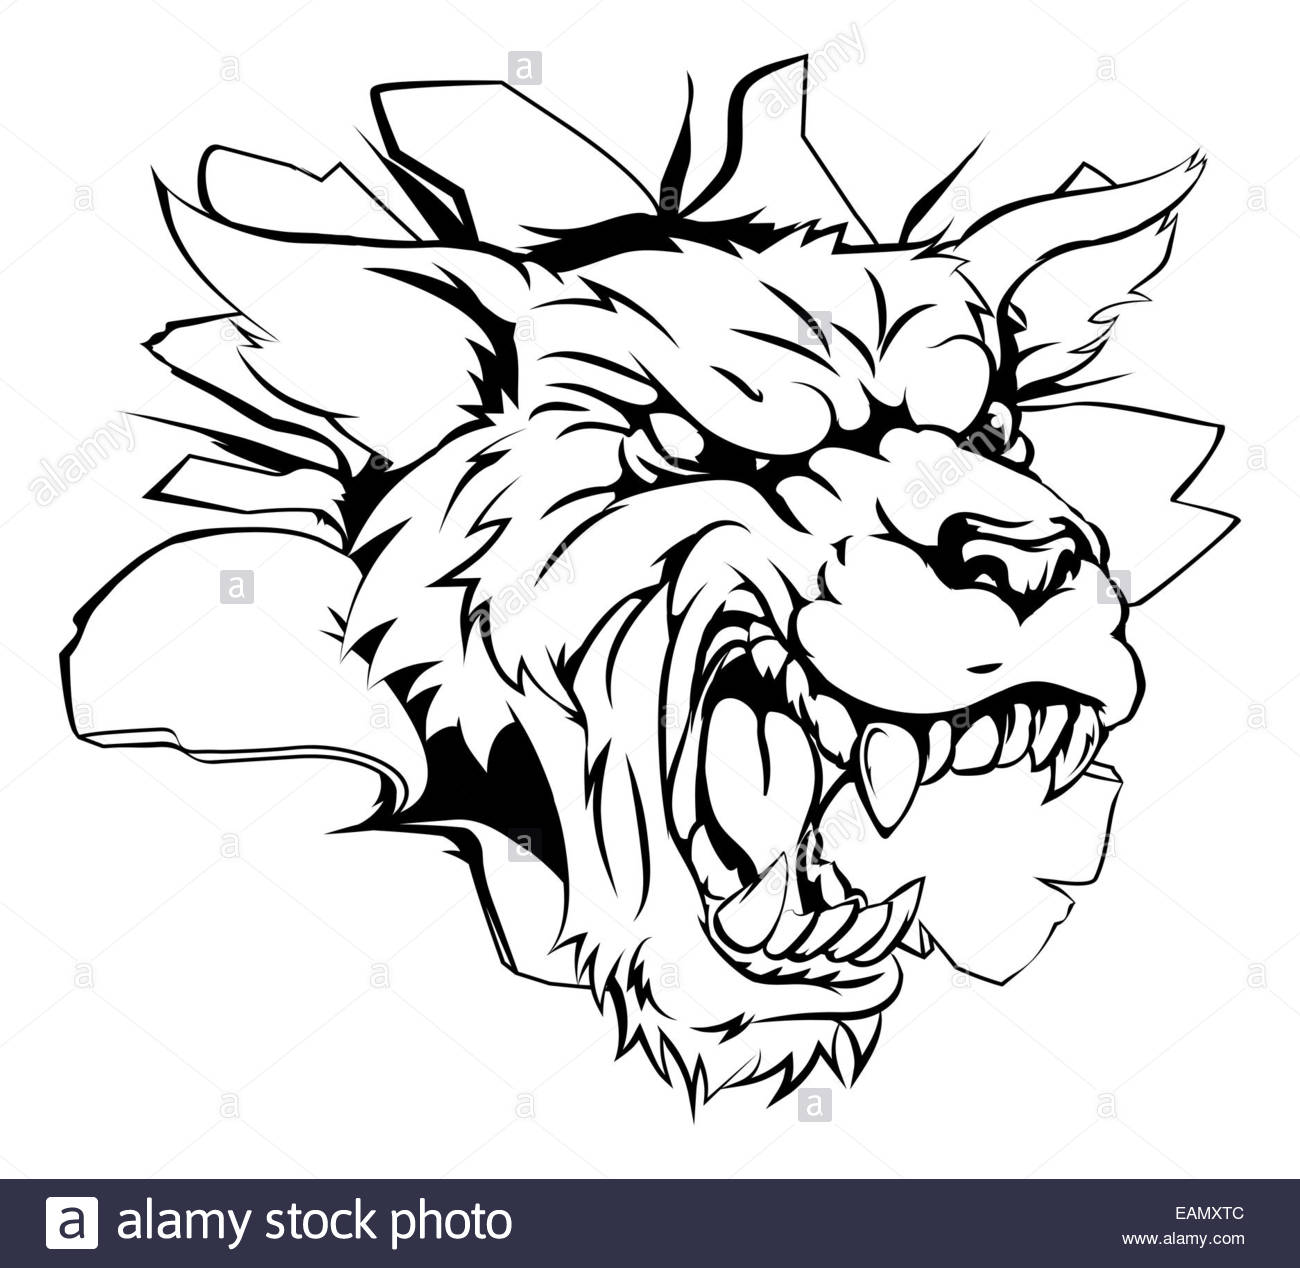 Line Drawing Wolf Head : Easy wolf head drawing at getdrawings free for